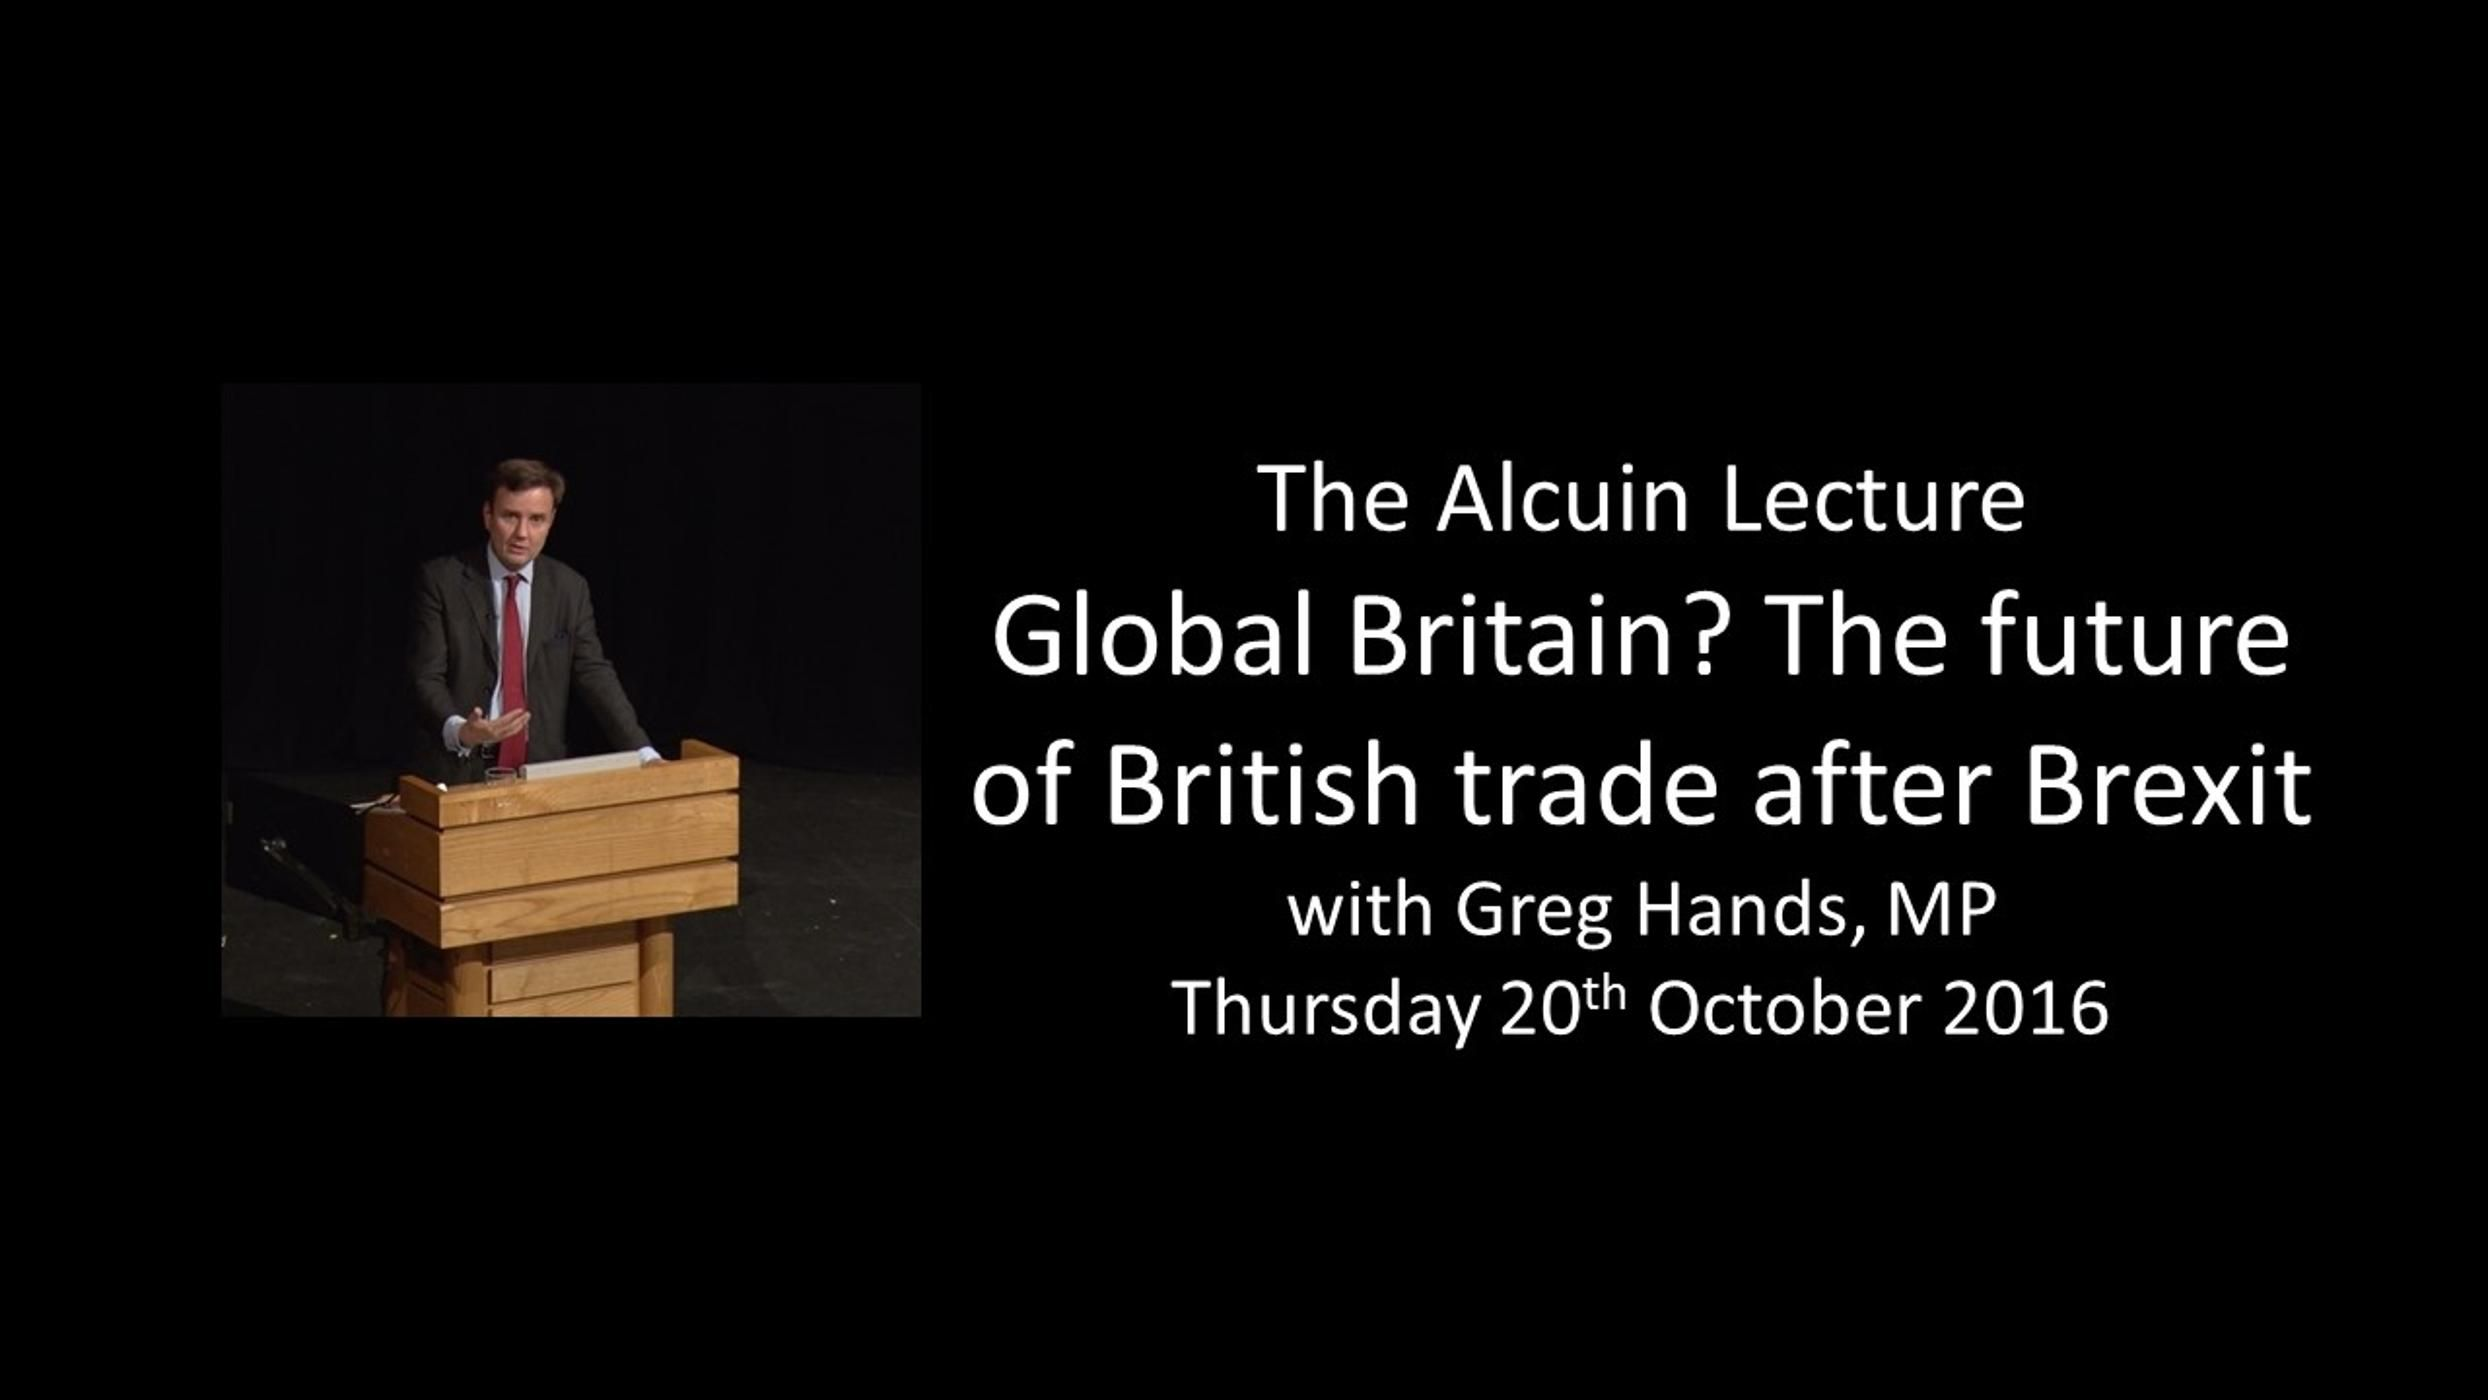 Alcuin Lecture 2016: Global Britain? The future of British trade after Brexit with Greg Hands, MP